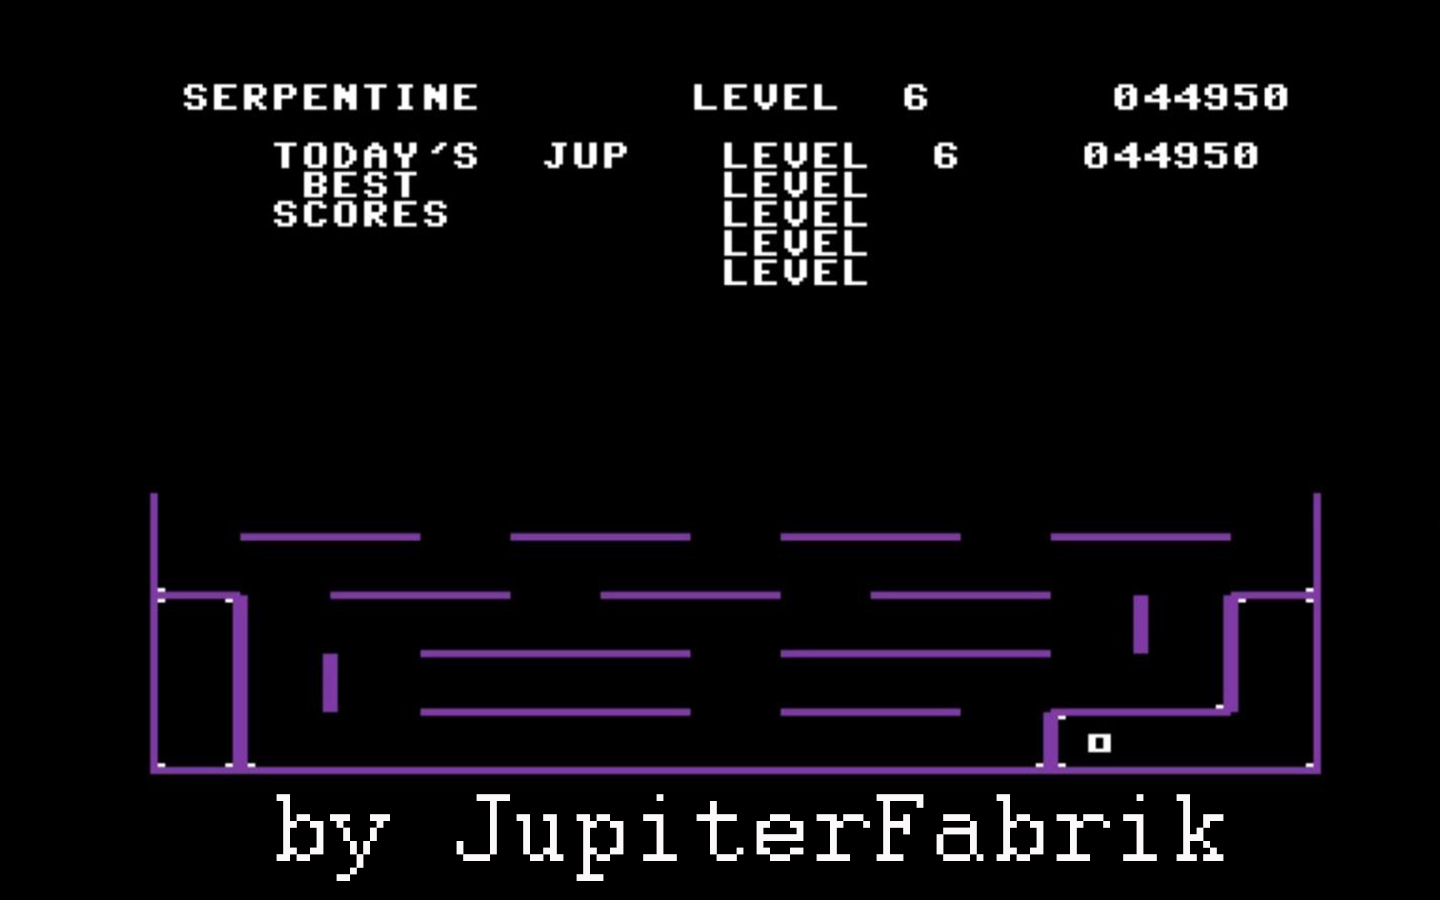 JupiterFabrik: Serpentine (Commodore 64 Emulated) 44,950 points on 2015-10-10 02:54:04